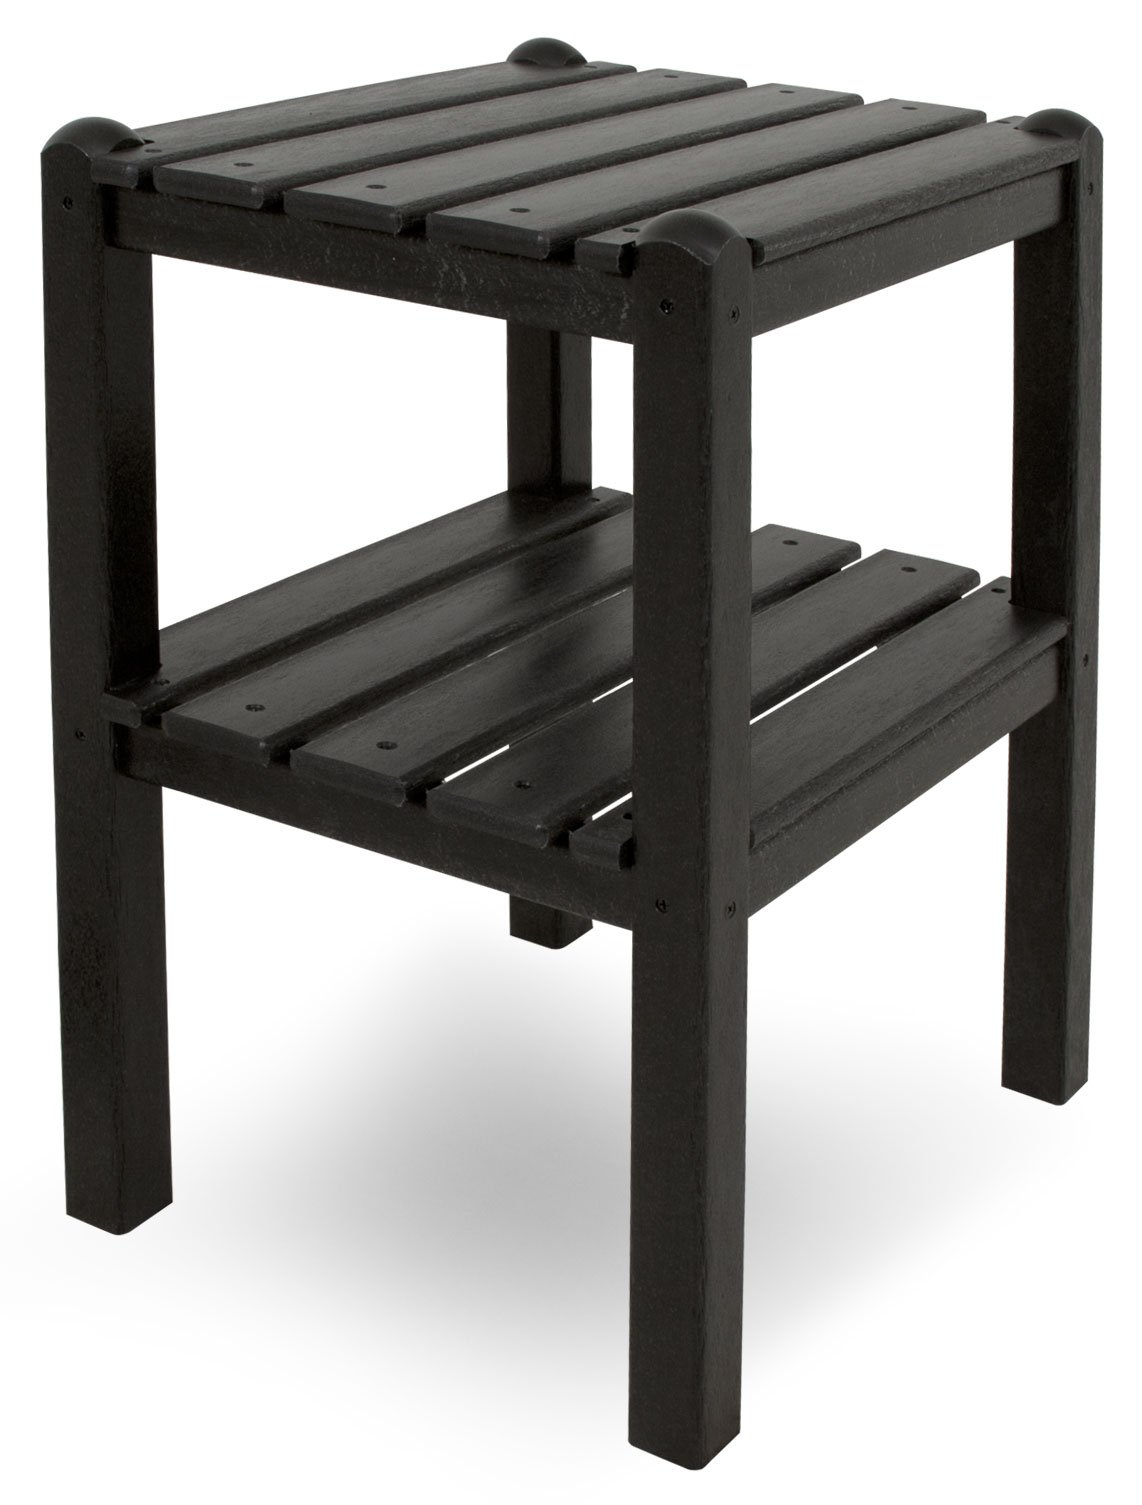 POLYWOOD TWSTBL Two Shelf Side Table, Black